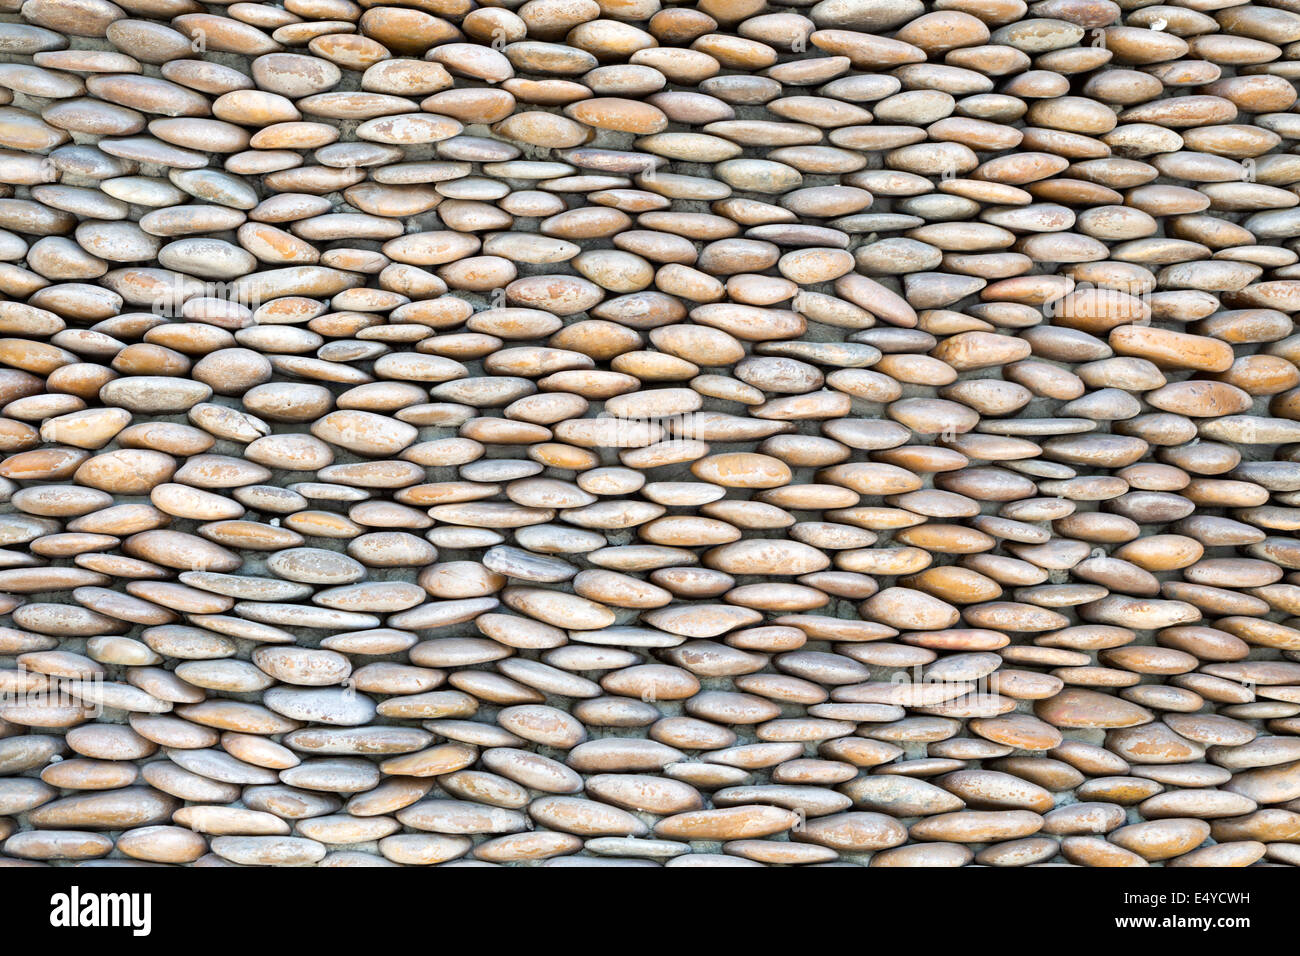 stone wall, lined with pebbles - Stock Image